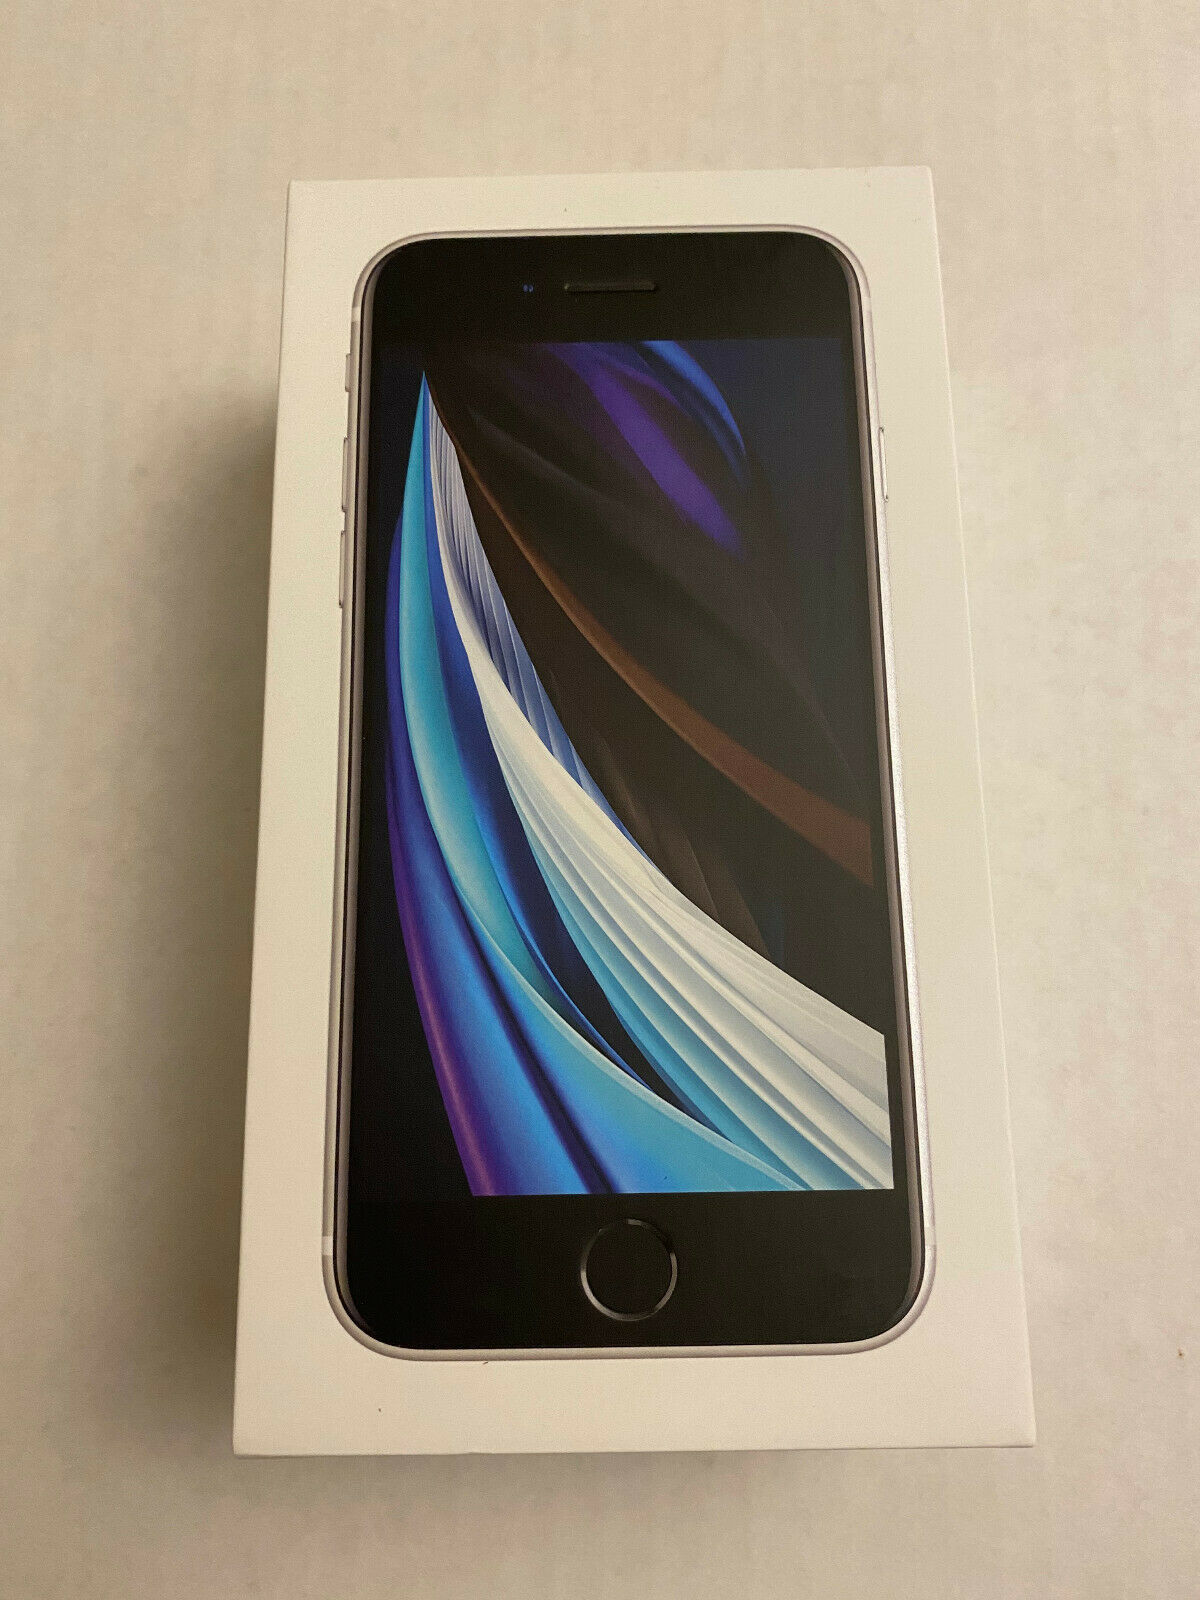 Apple IPhone SE 2nd Gen. - 64GB - White T-Mobile A2275 CDMA GSM  - $259.00